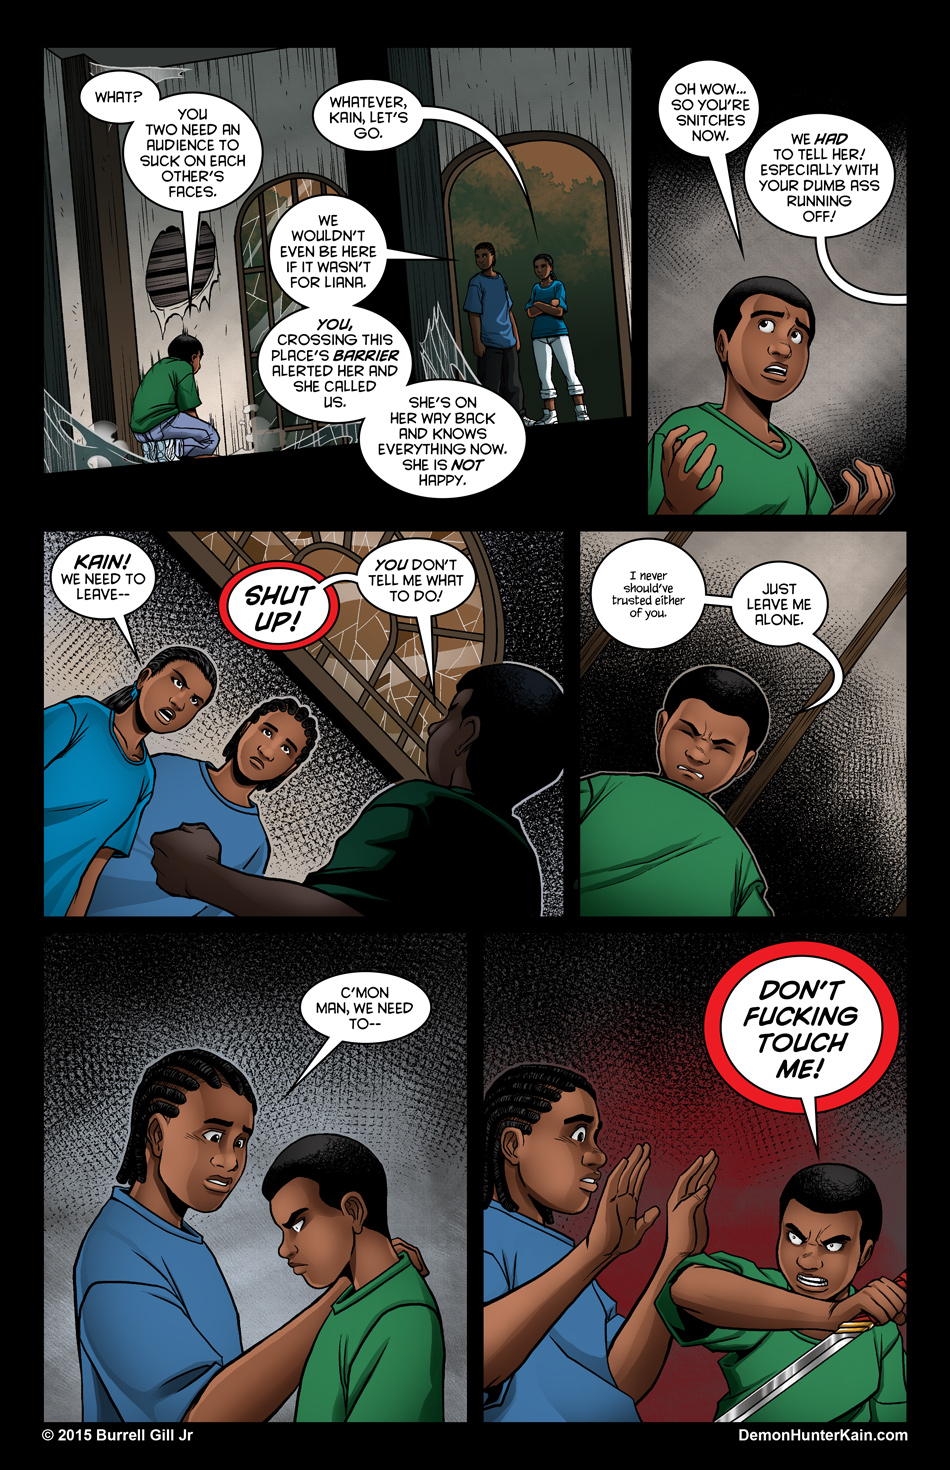 Demon Hunter Kain Chapter 6: The Boy Called Kain, Page 49.